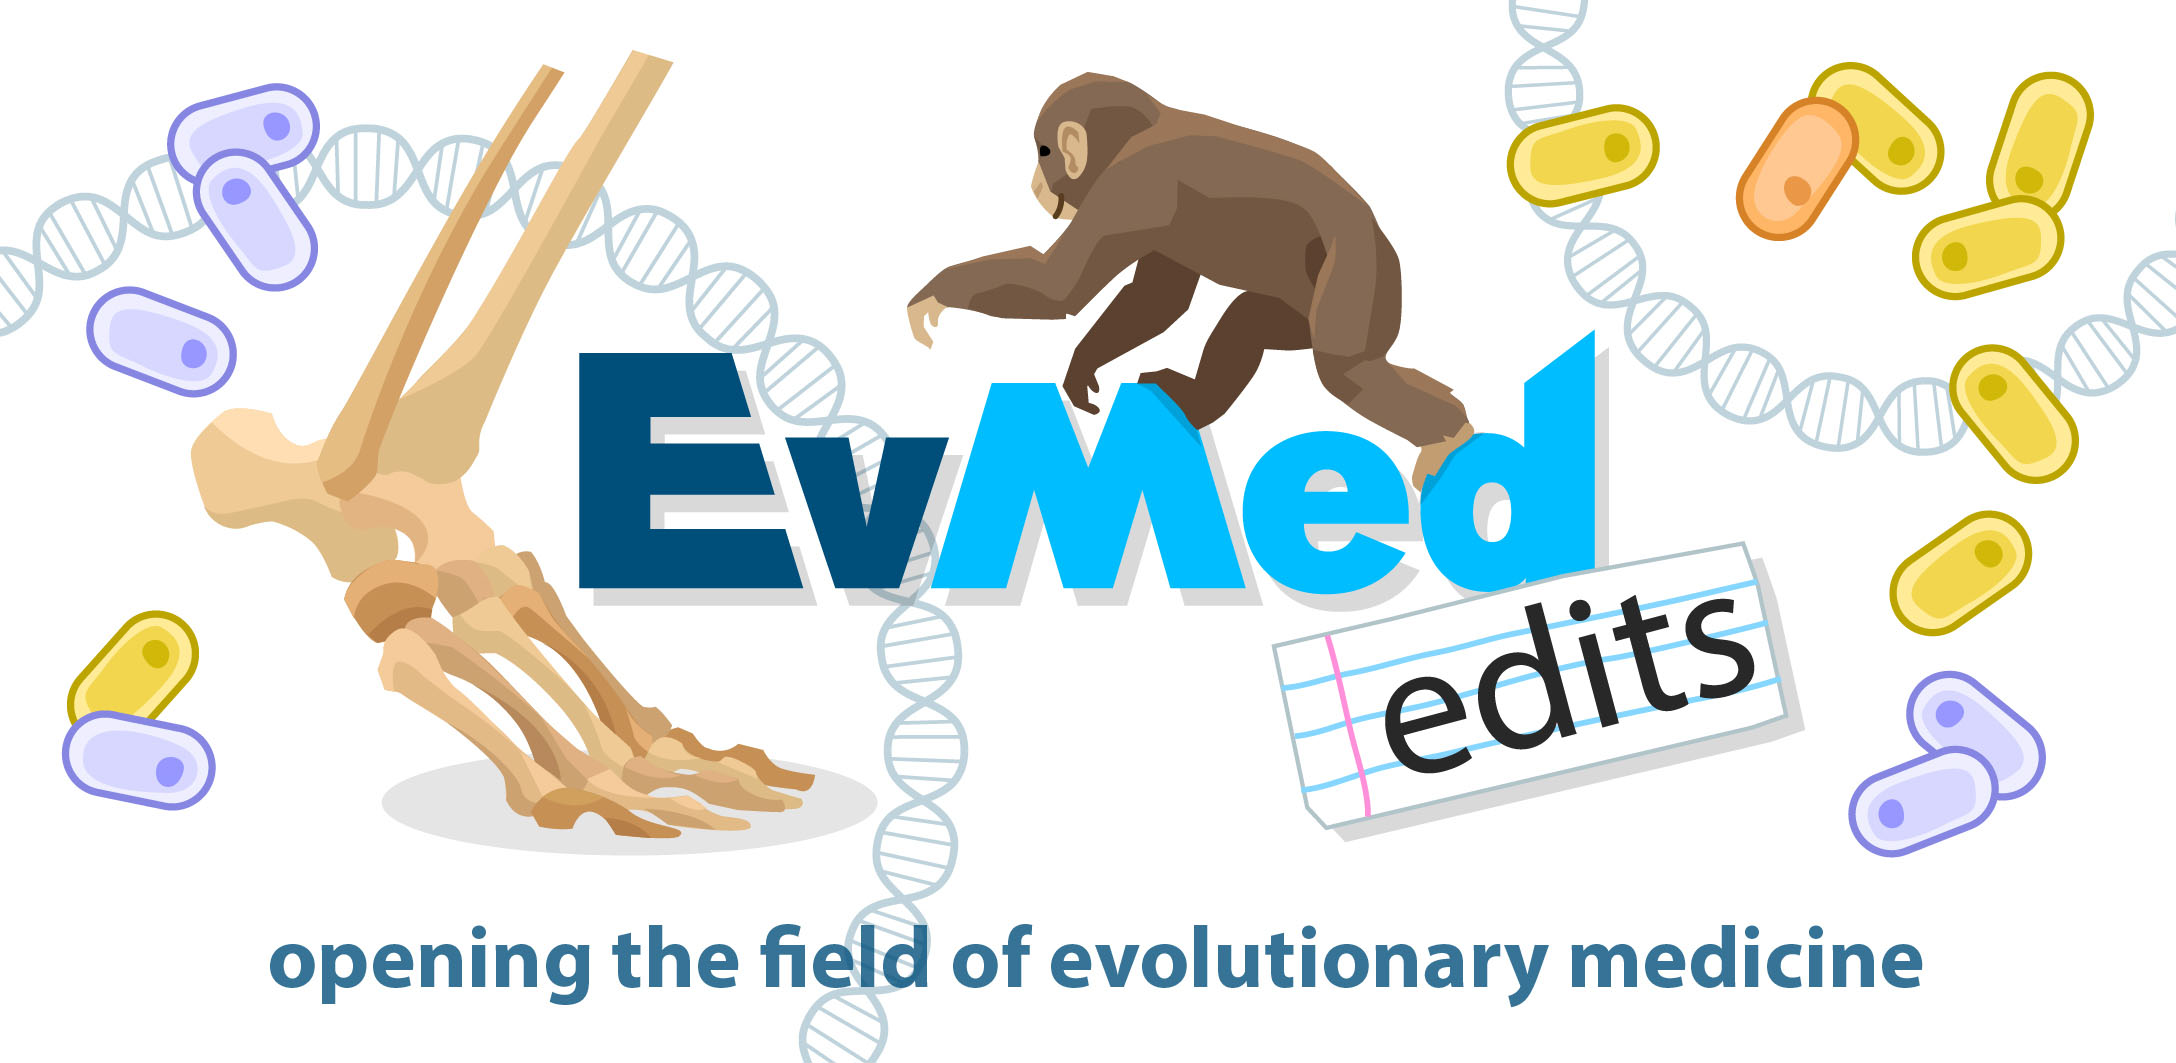 Why Do We Get Sick? Evolutionary Medicine